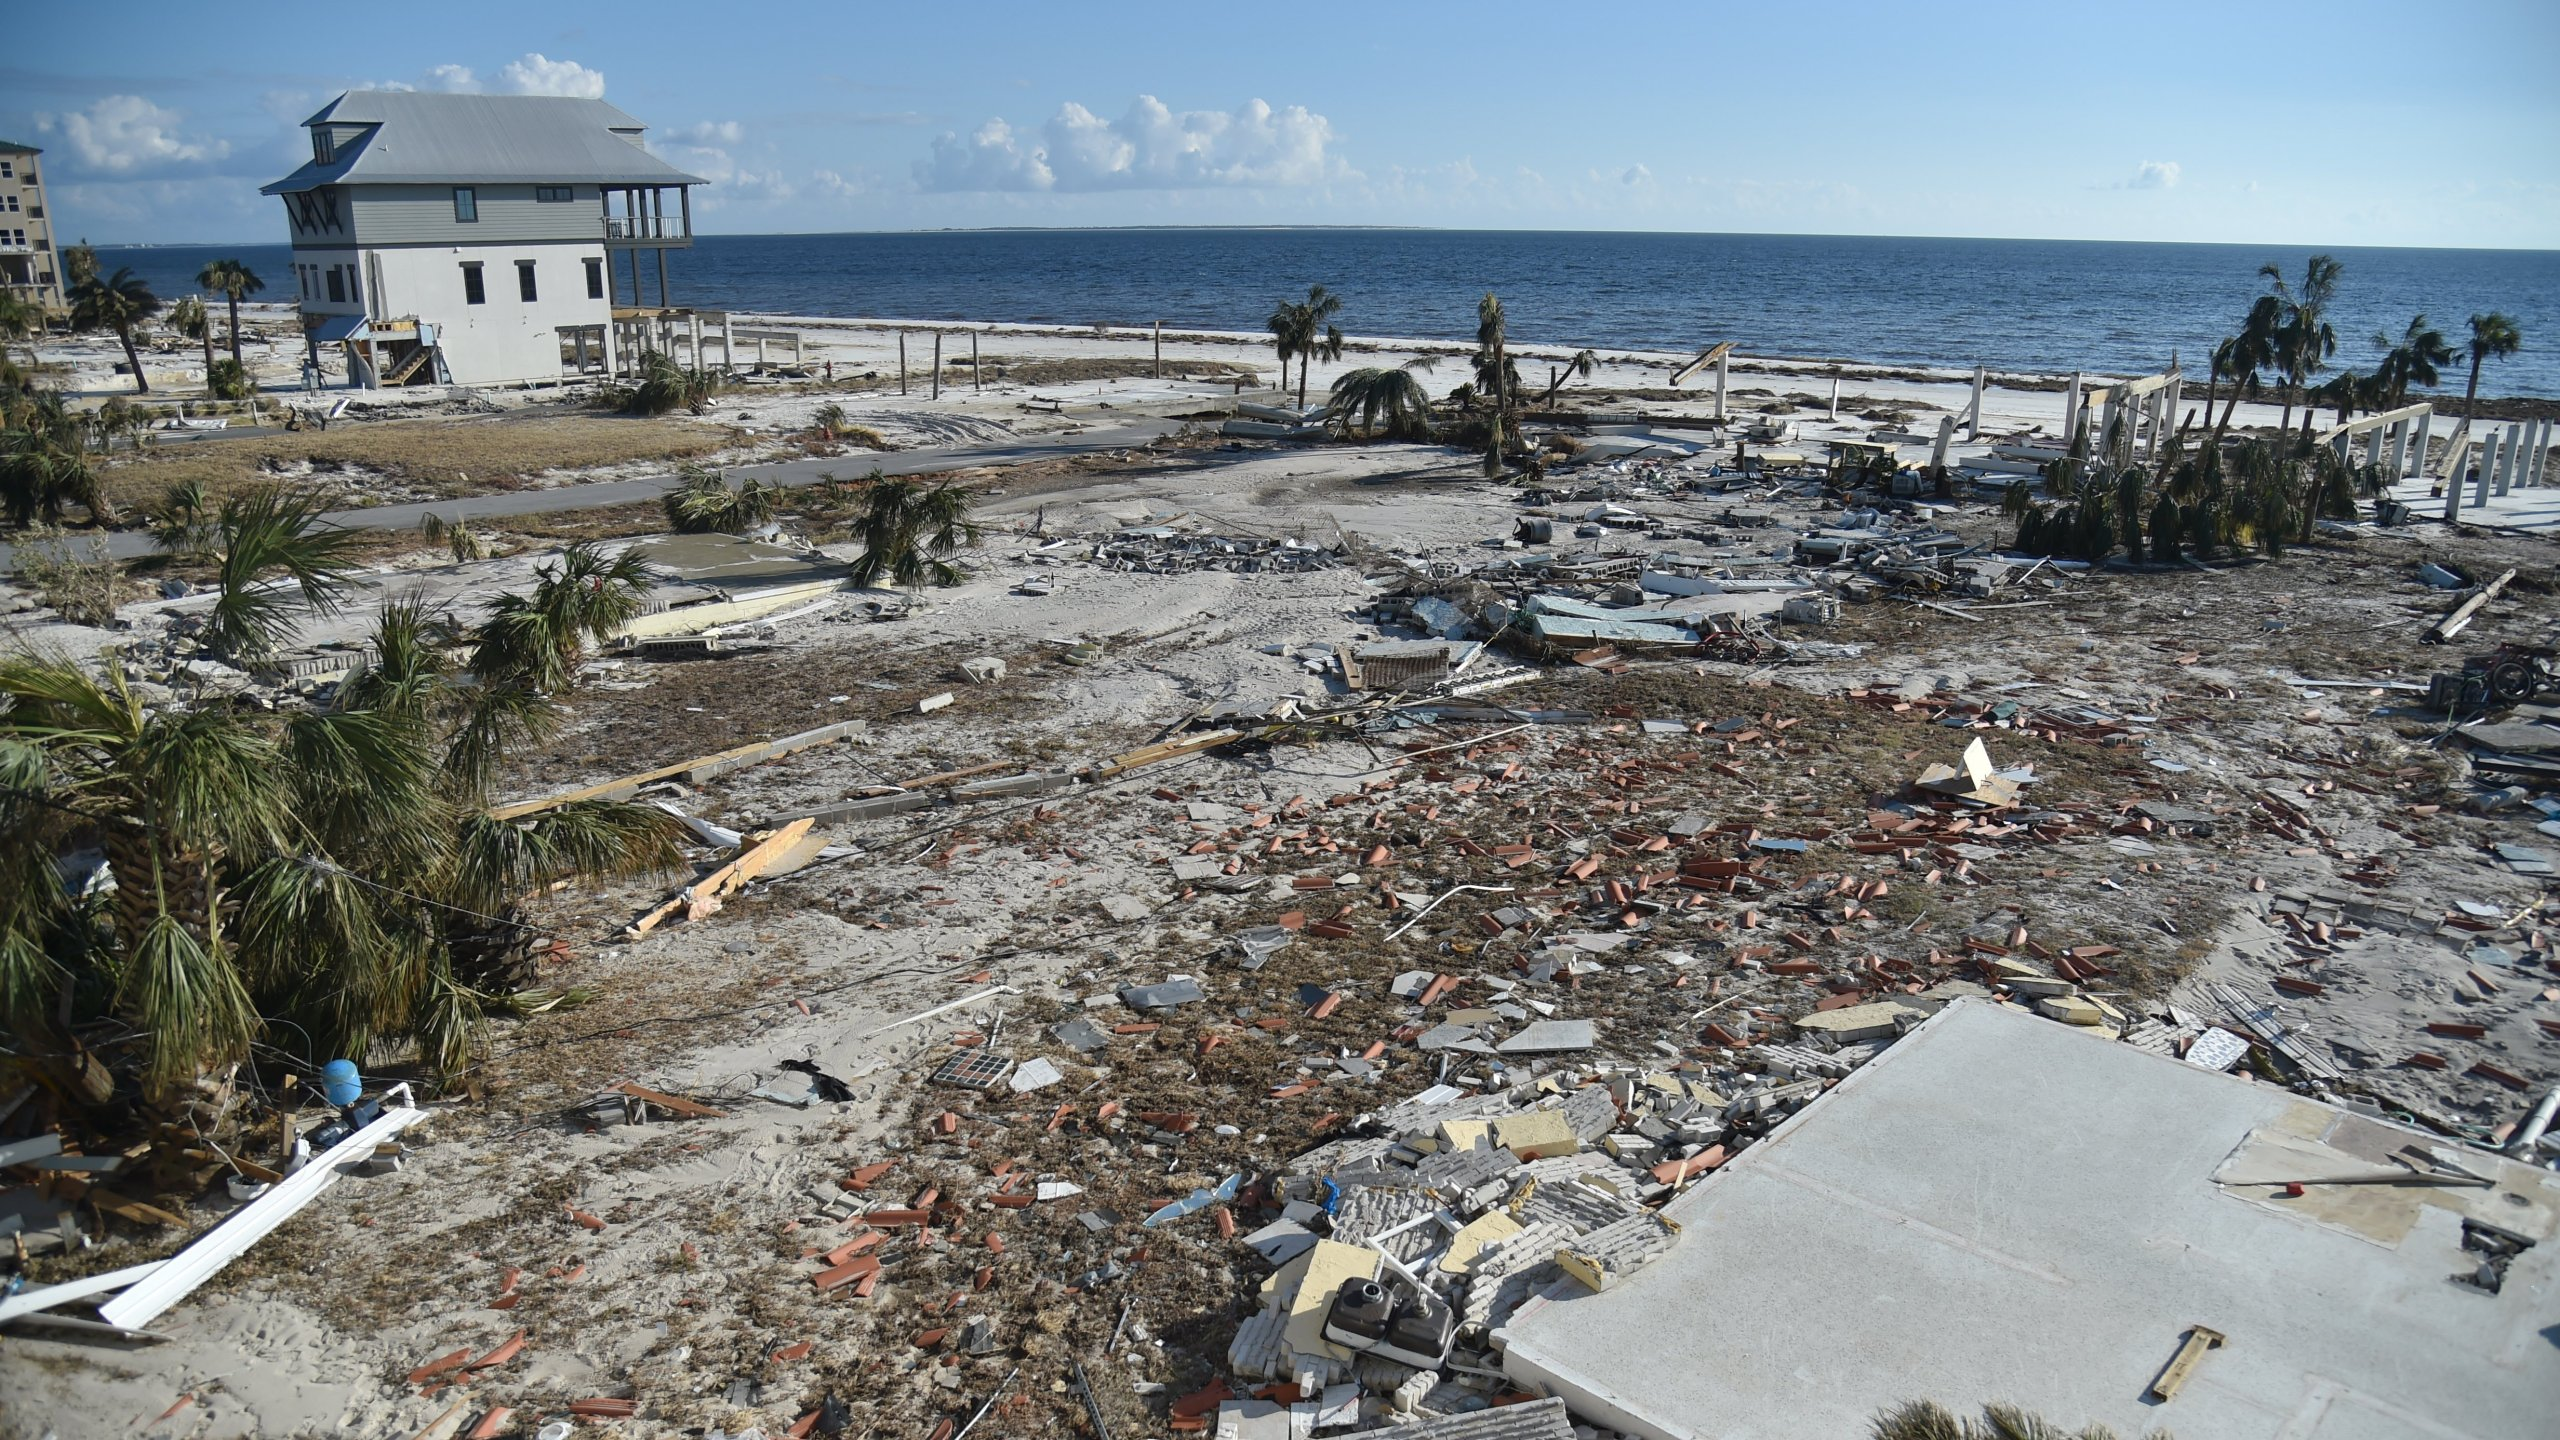 Many of the coastal houses in Mexico Beach, Florida, have been obliterated. (Credit: CNN)